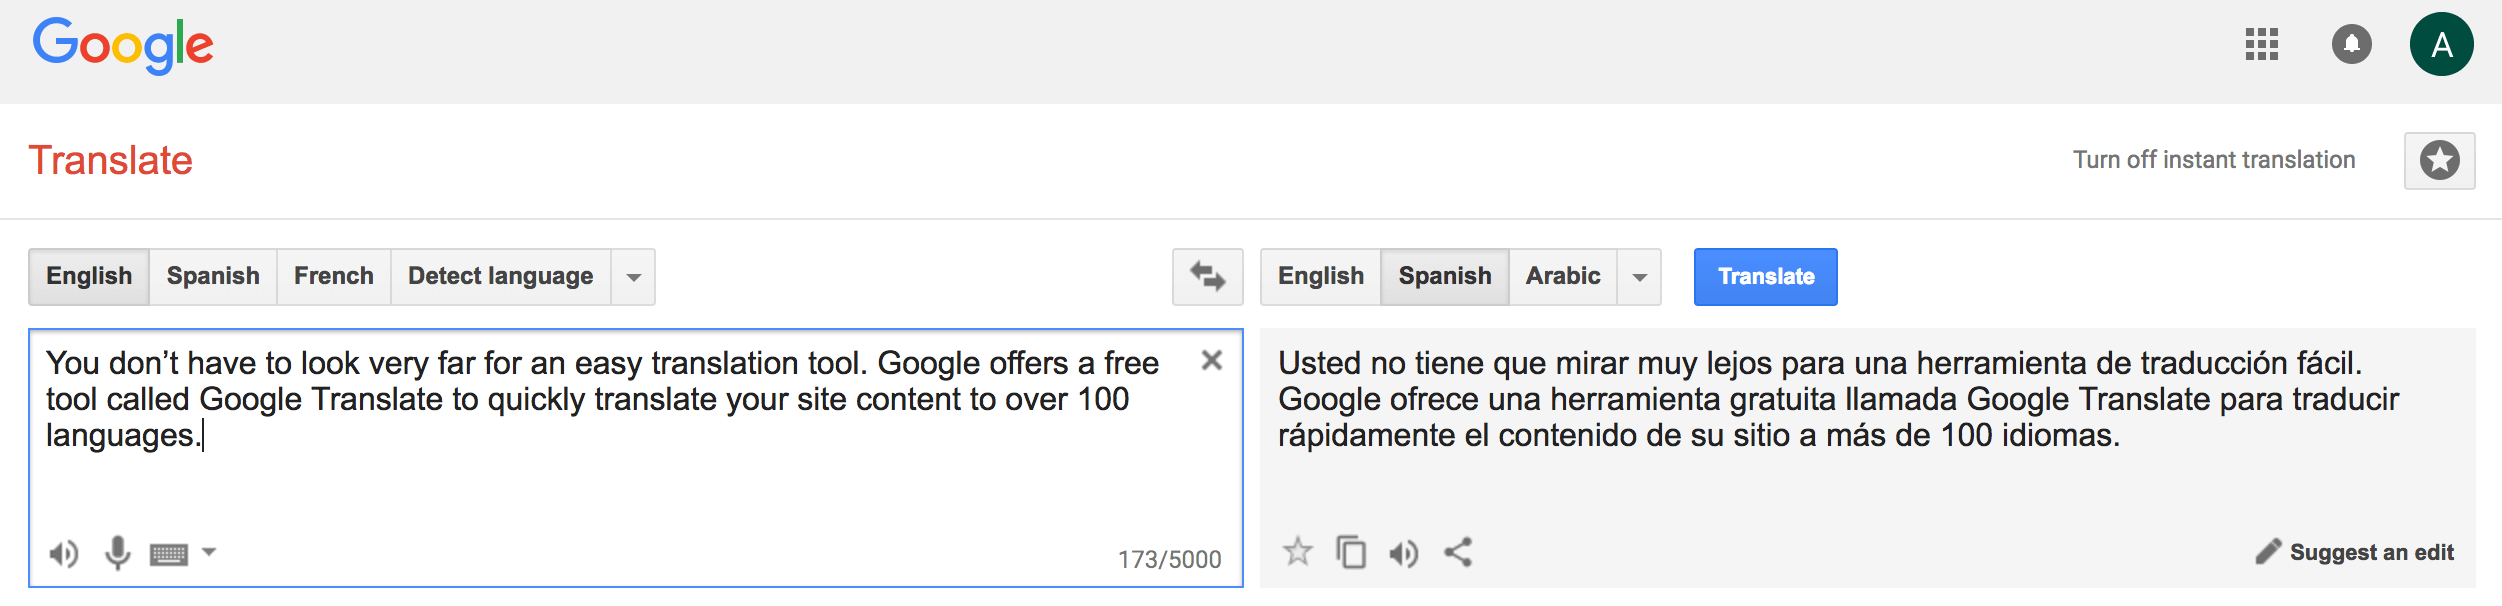 Translate Eng To Spanish